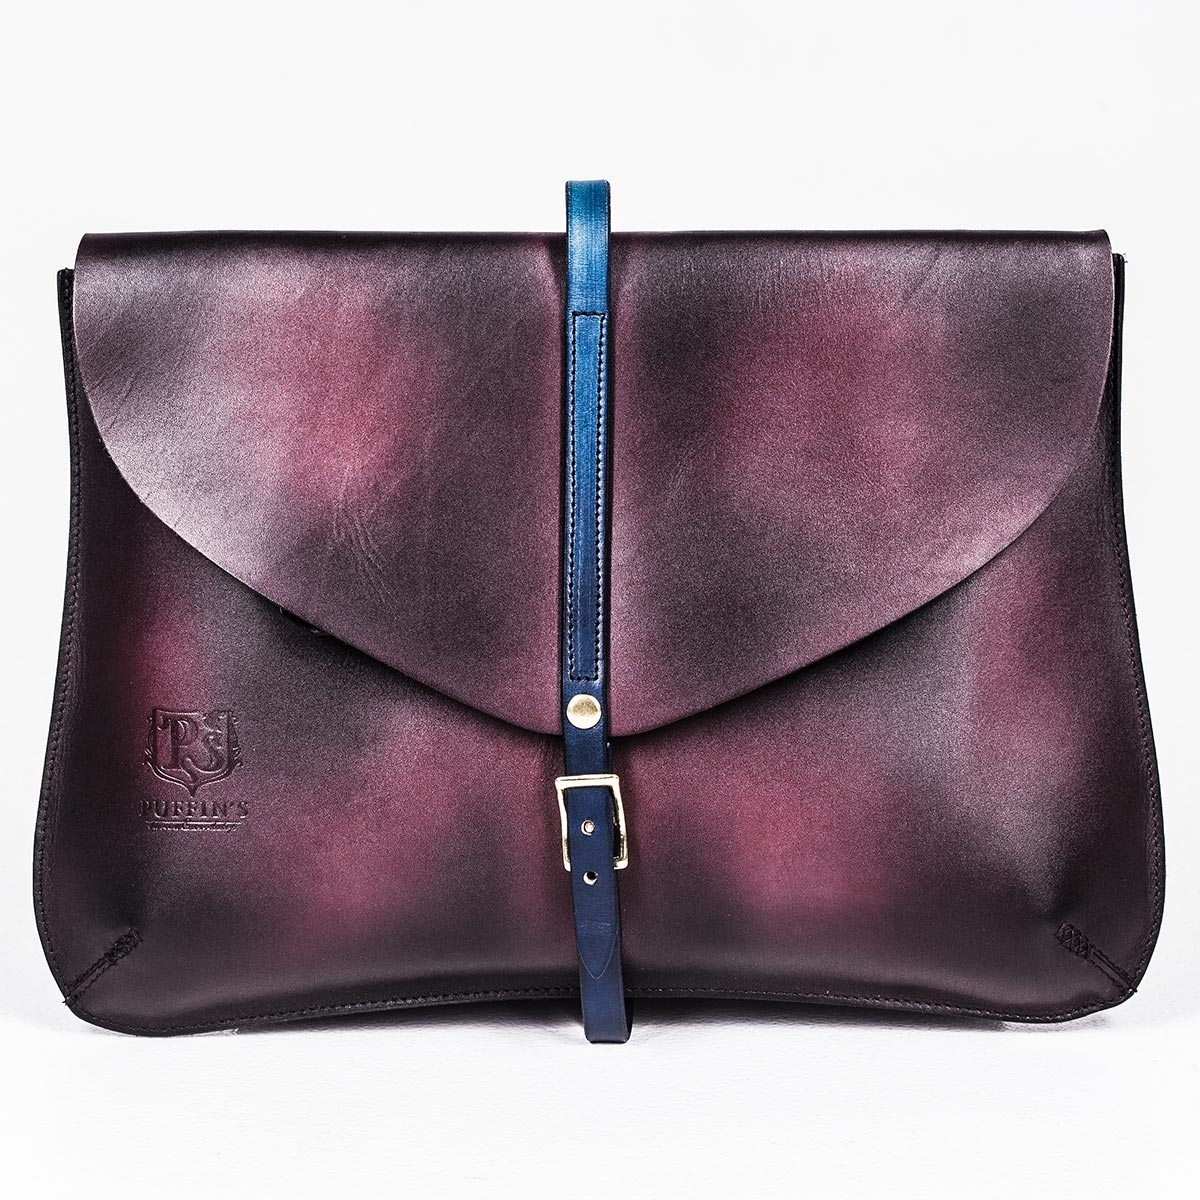 Elegant clutch CELLO / 13'' MacBook case sapphire blue & plum wine